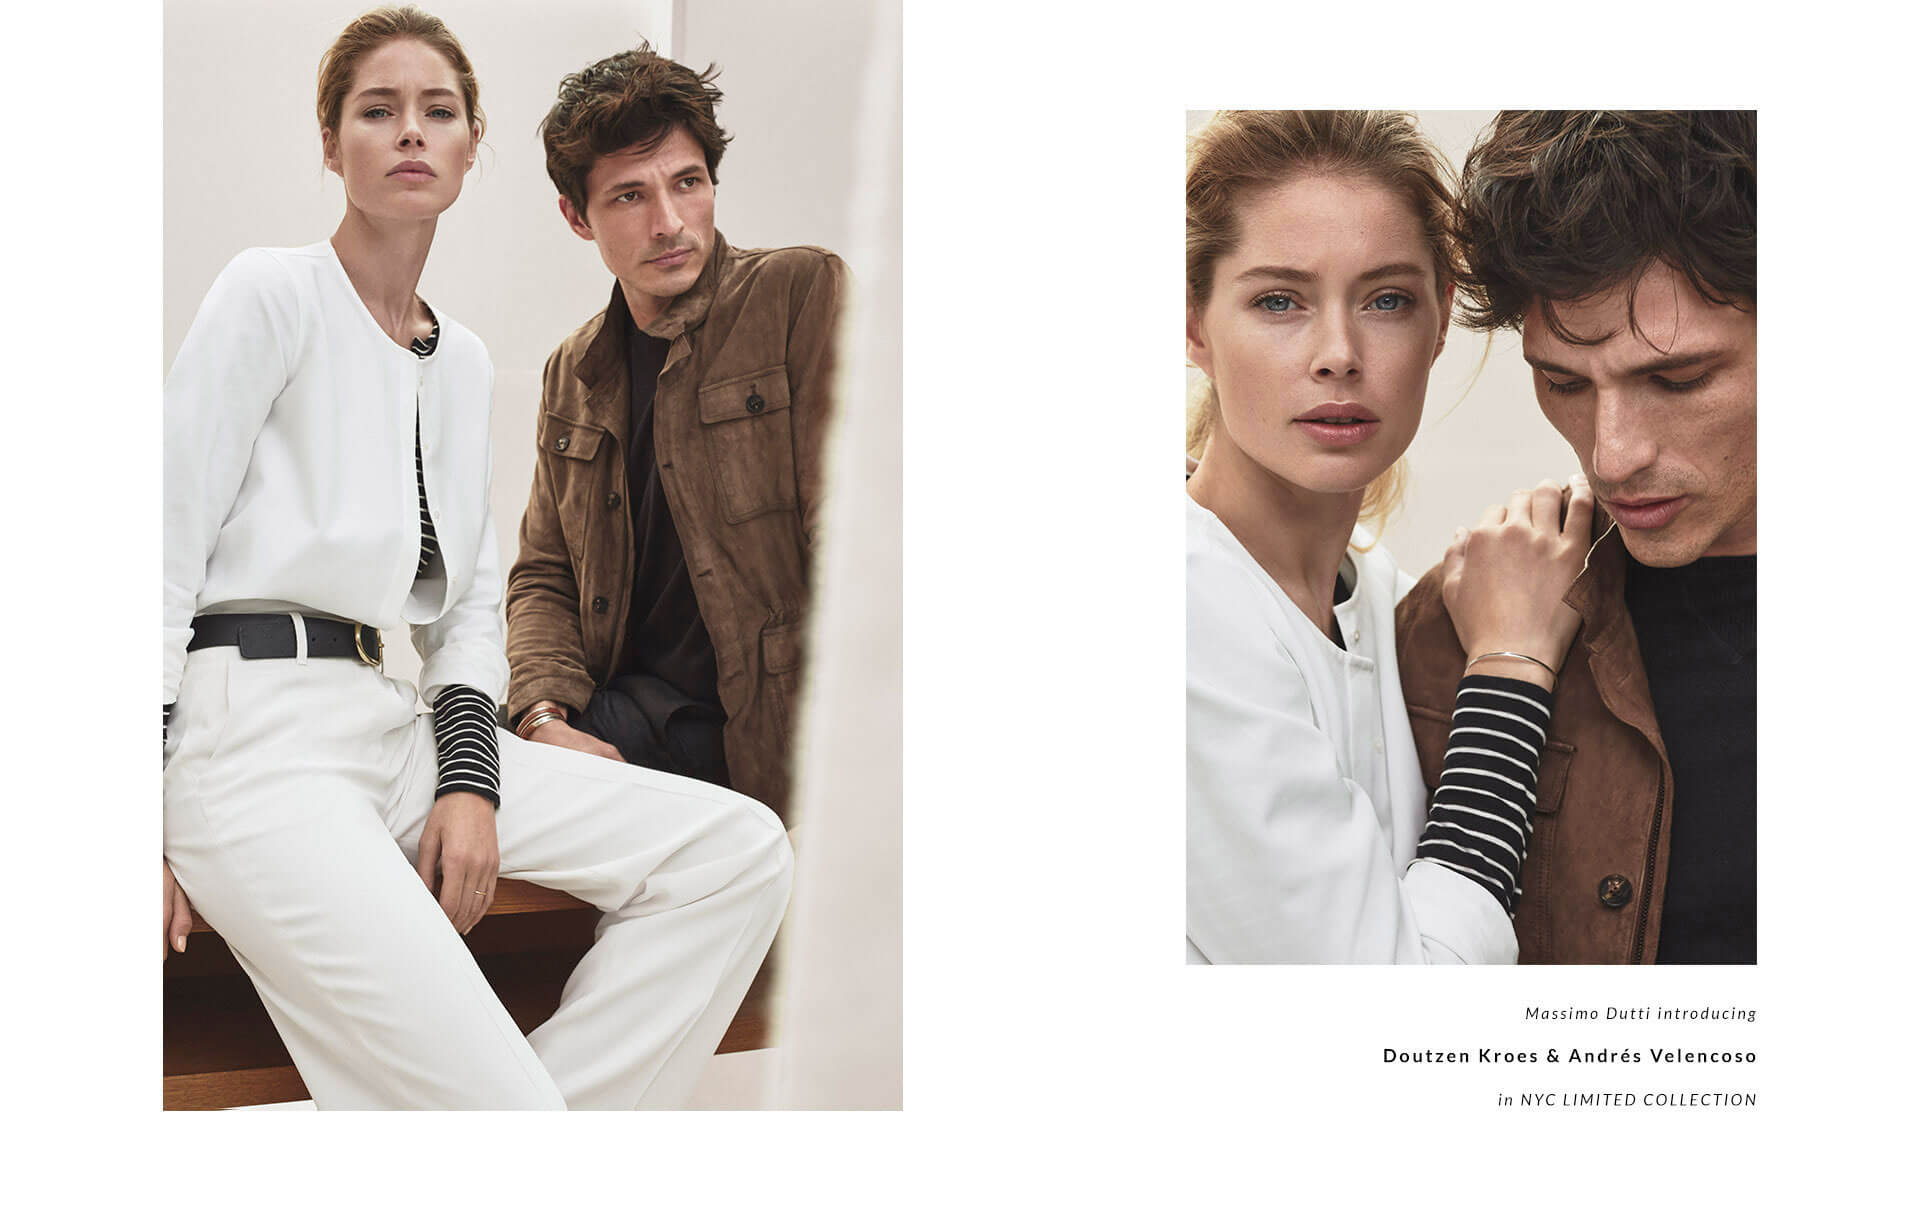 Massimo-Dutti-2016-Spring-Summer-Campaign-NYC-Limited-Edition-001